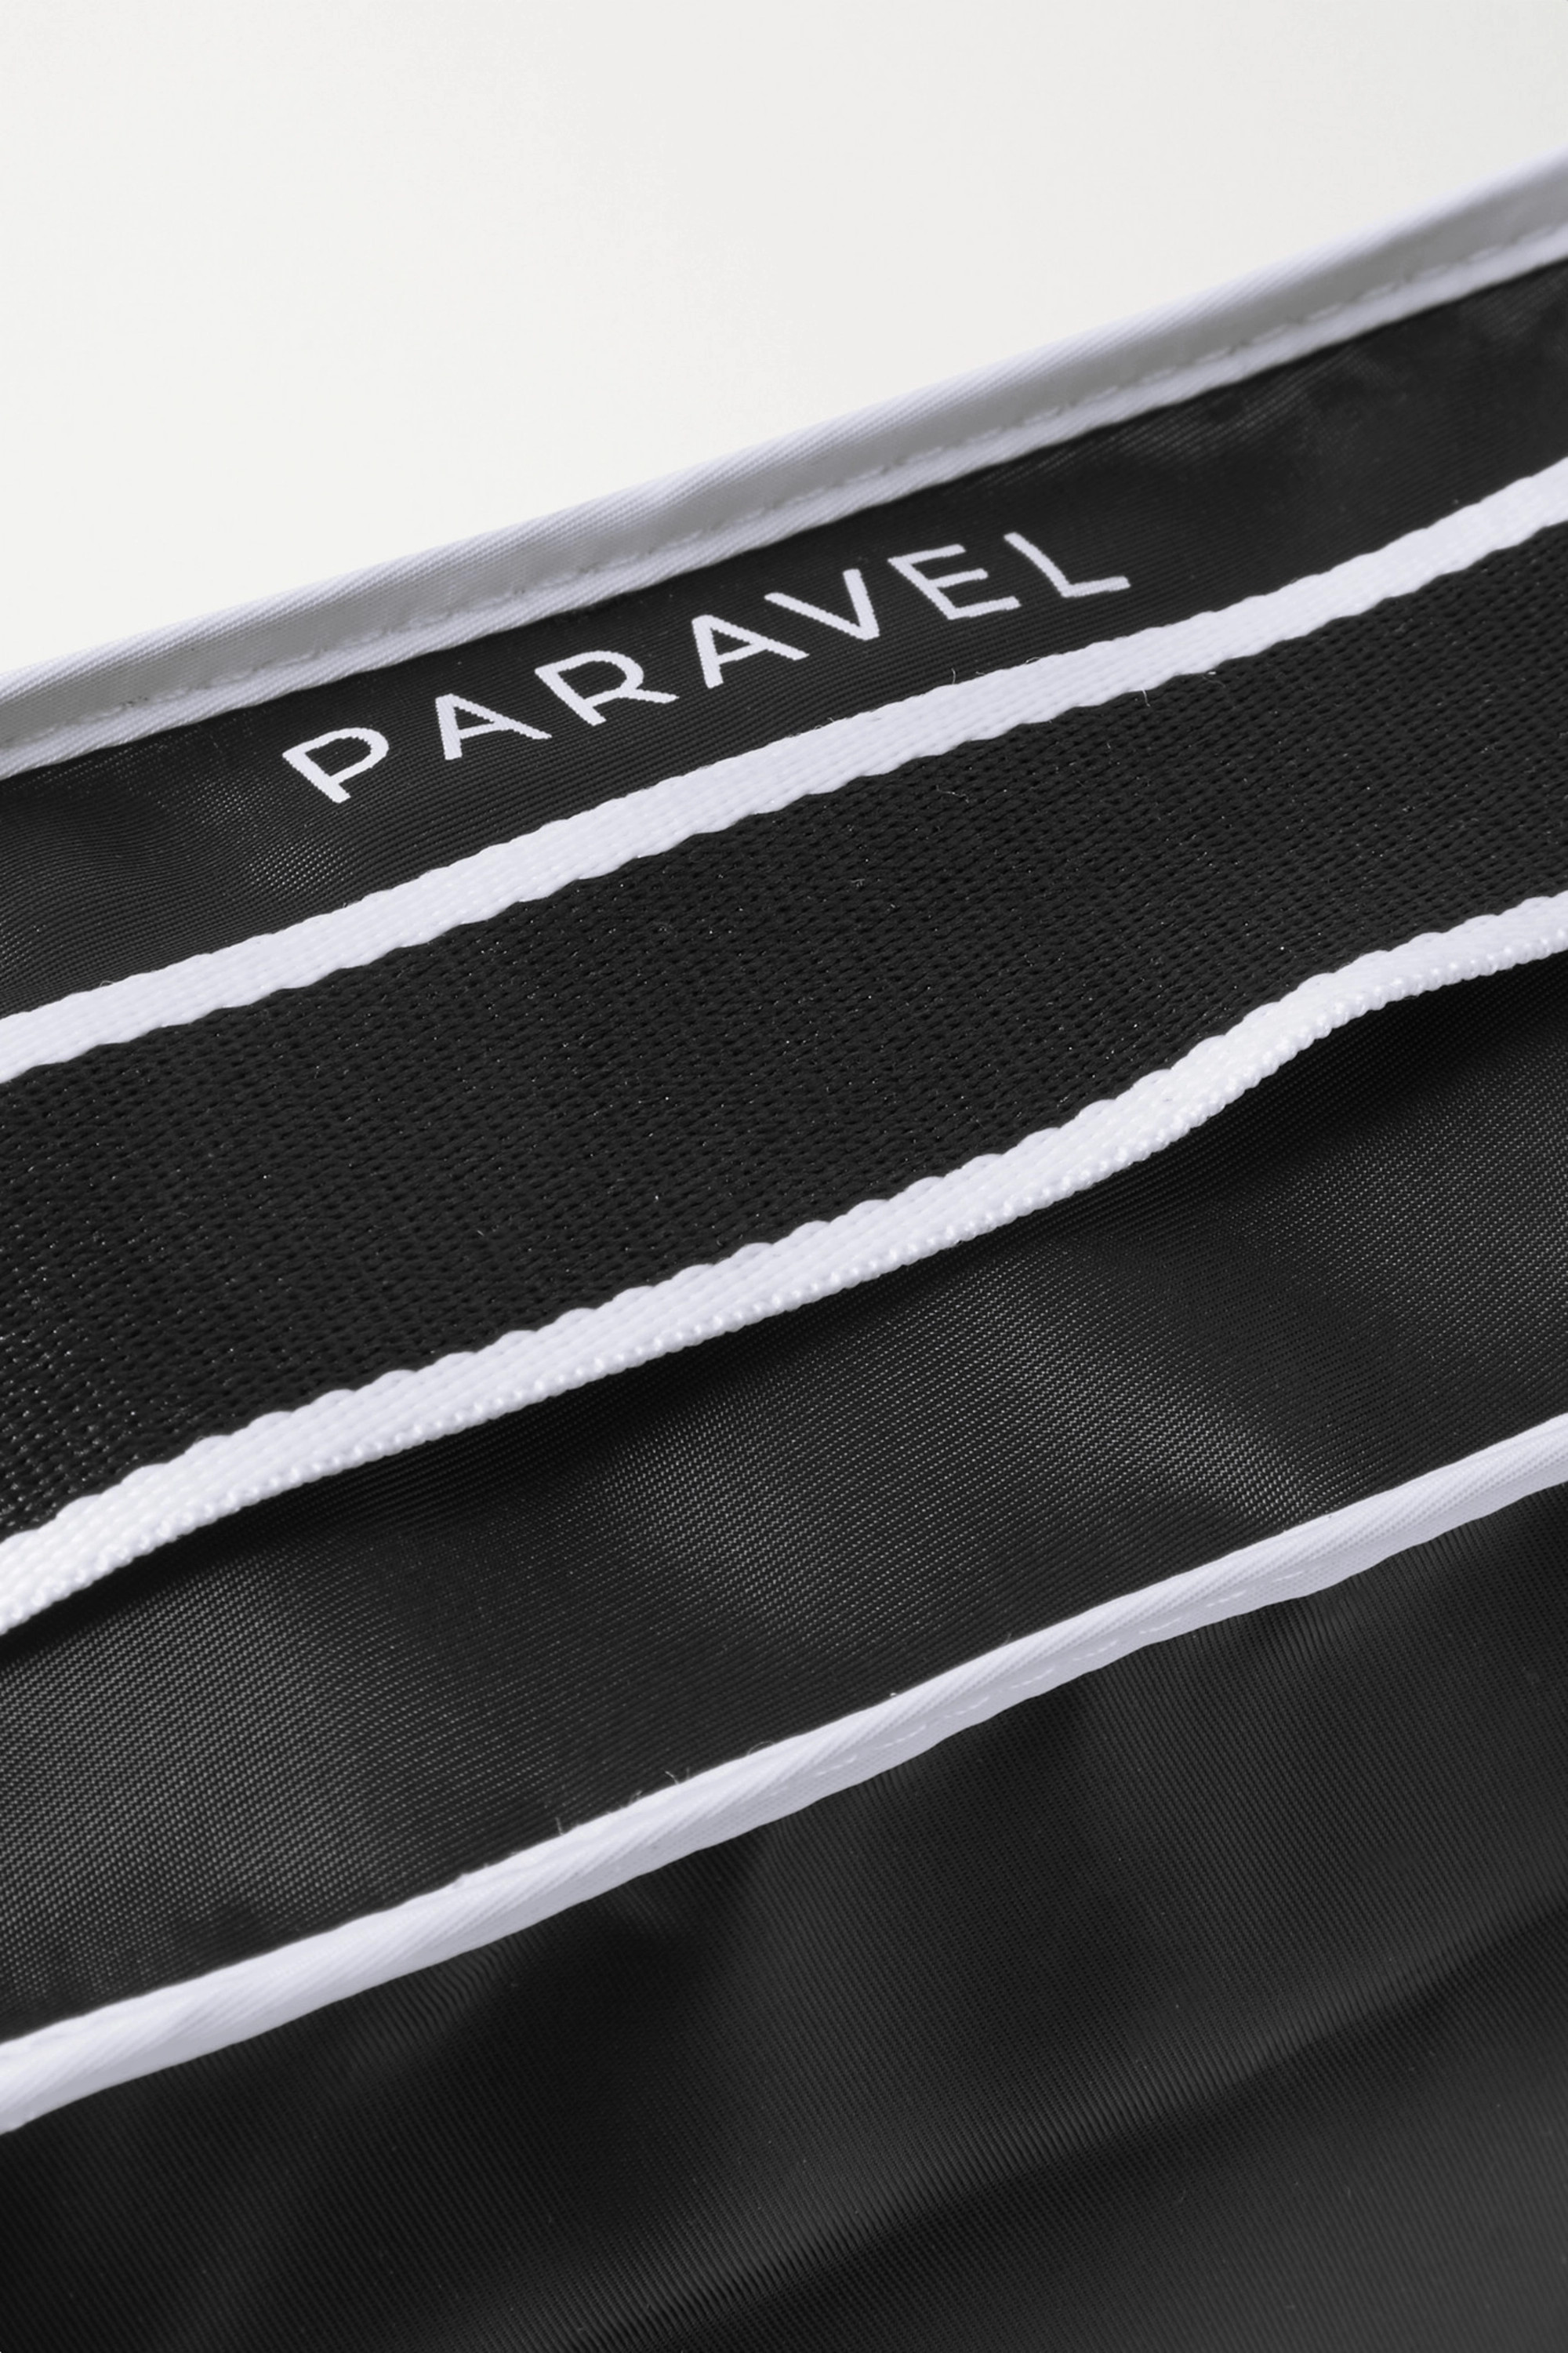 PARAVEL Set of two nylon and TPU shoe cubes